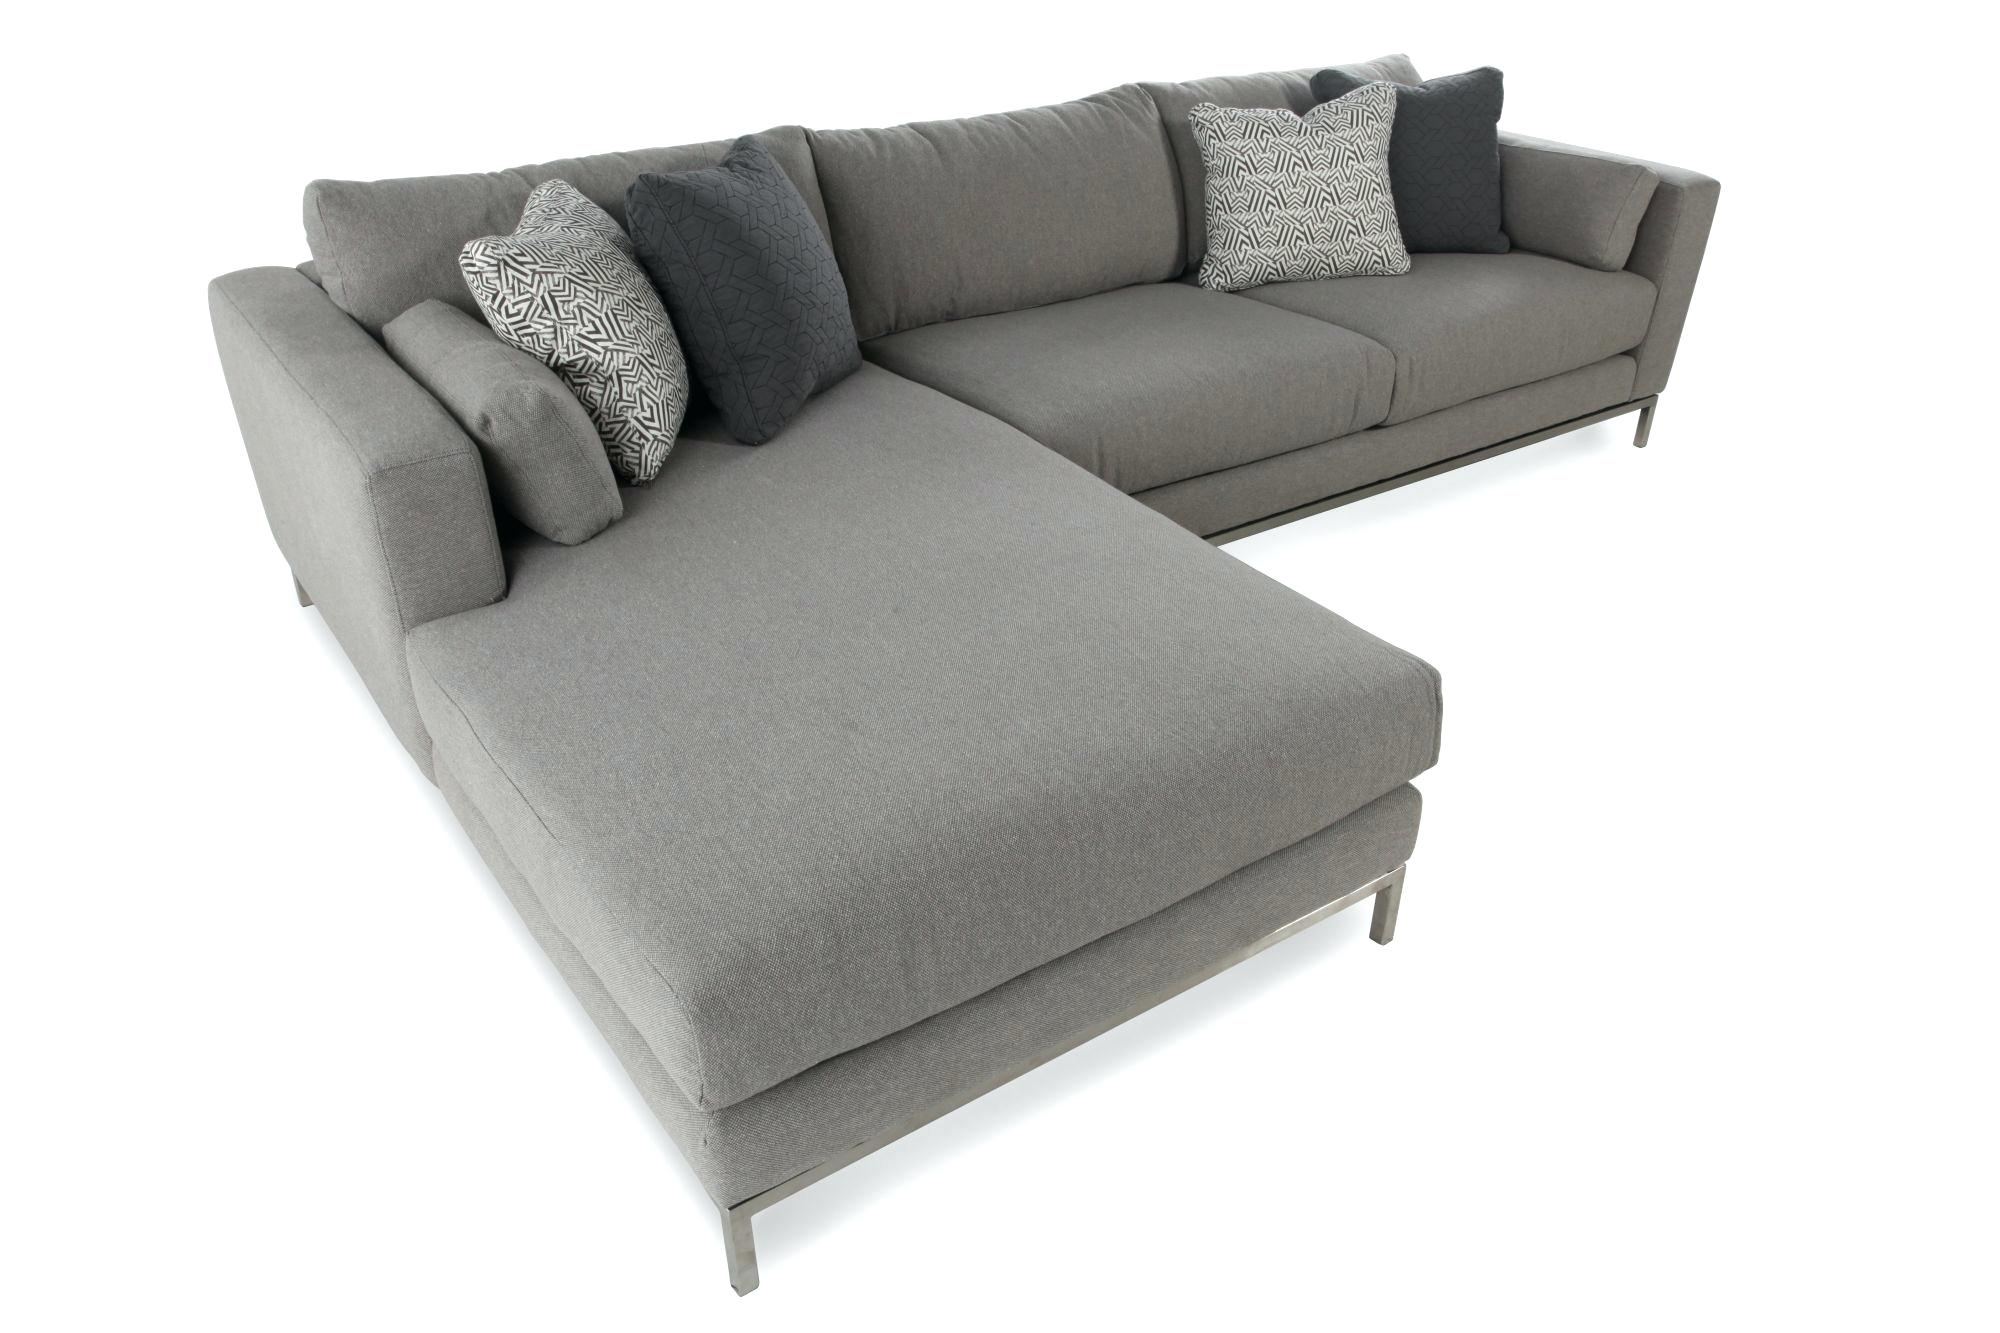 2 Piece Sectional Sofa Canada | Baci Living Room intended for Cosmos Grey 2 Piece Sectionals With Raf Chaise (Image 1 of 30)